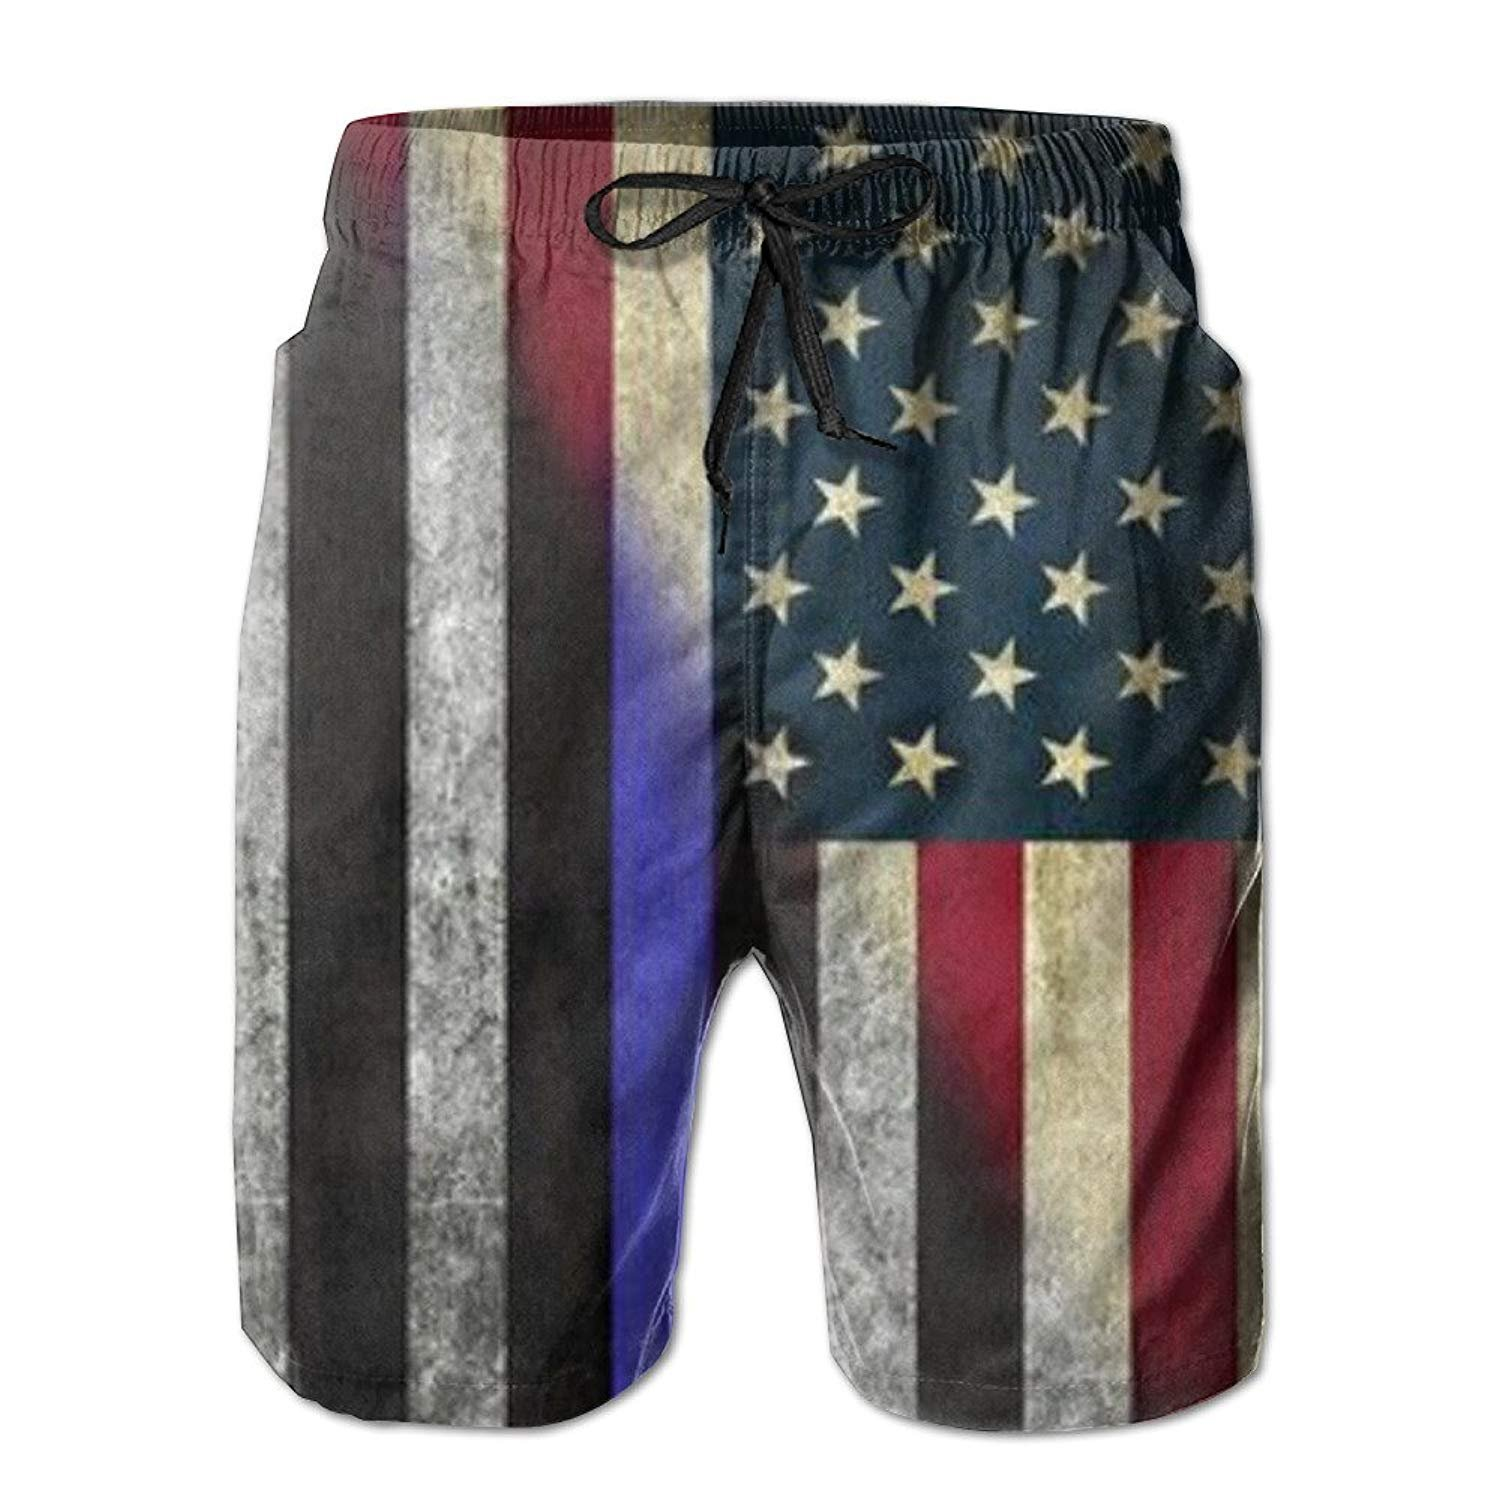 UNIQUE Pants American Thin Blue Line Flag Day Men's Quick Dry Beach Board Shorts Summer Swim Trunks for Father's Day